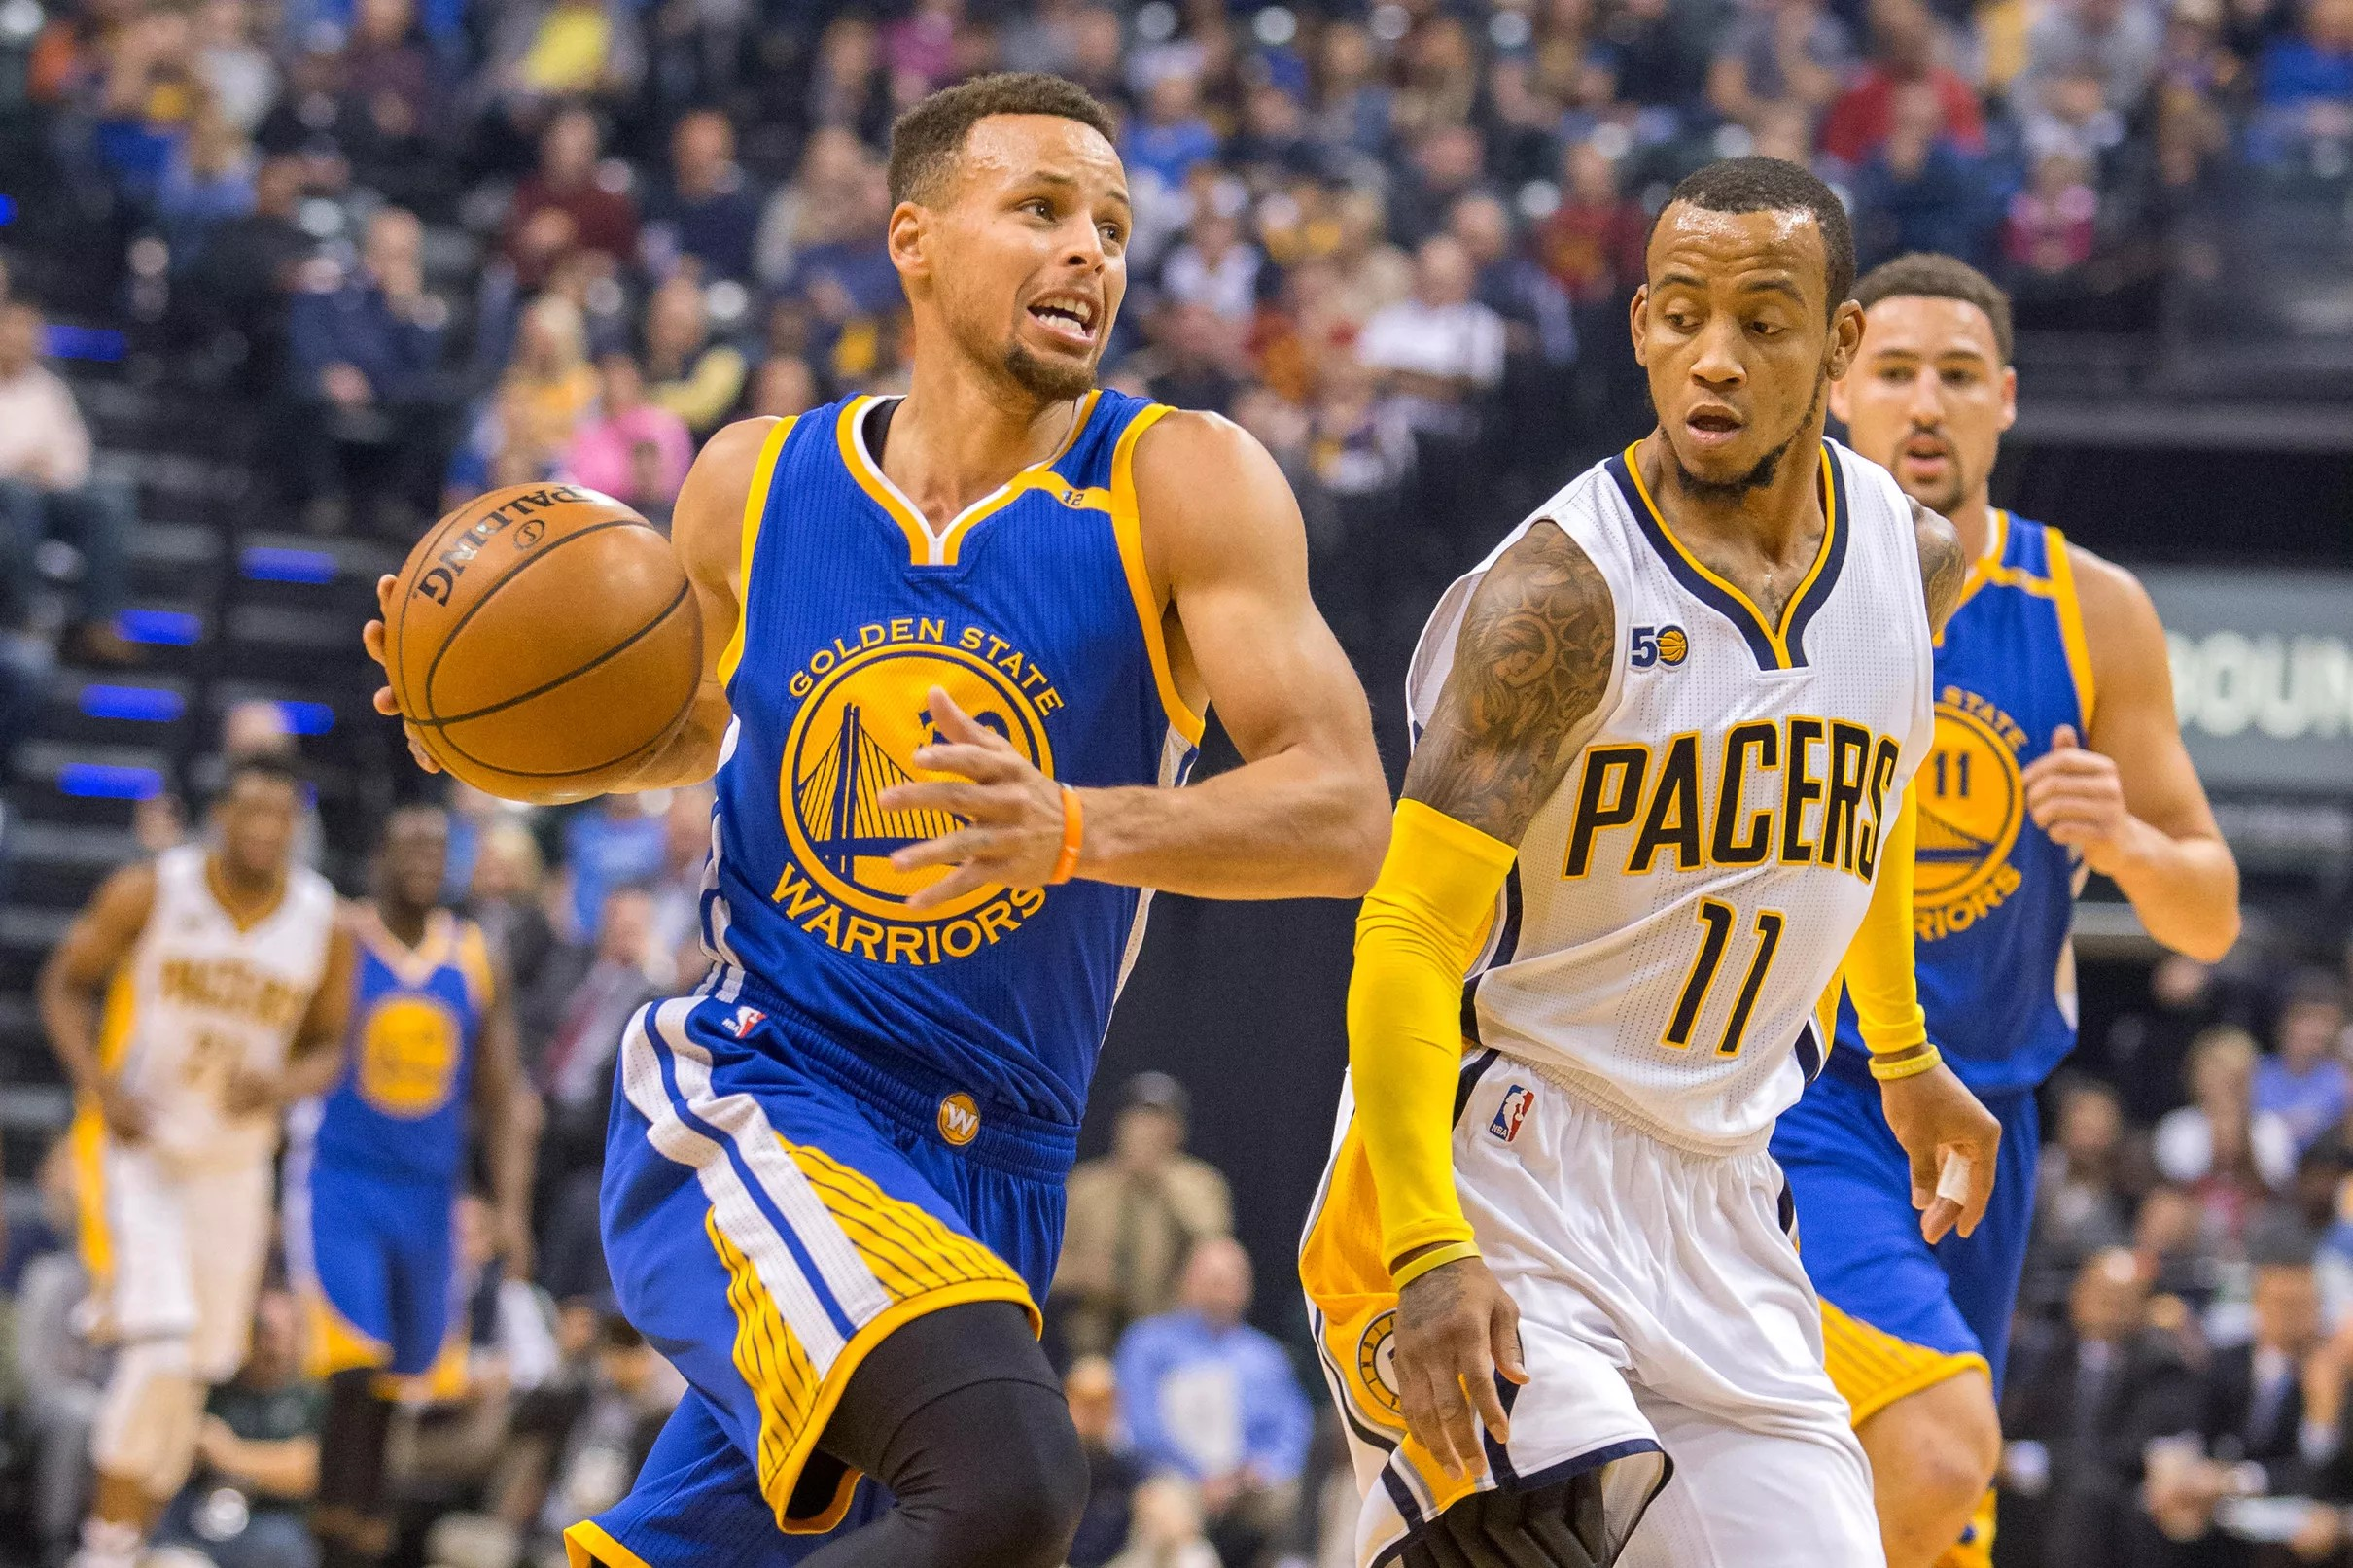 Warriors vs. Pacers: Remembering where we came from